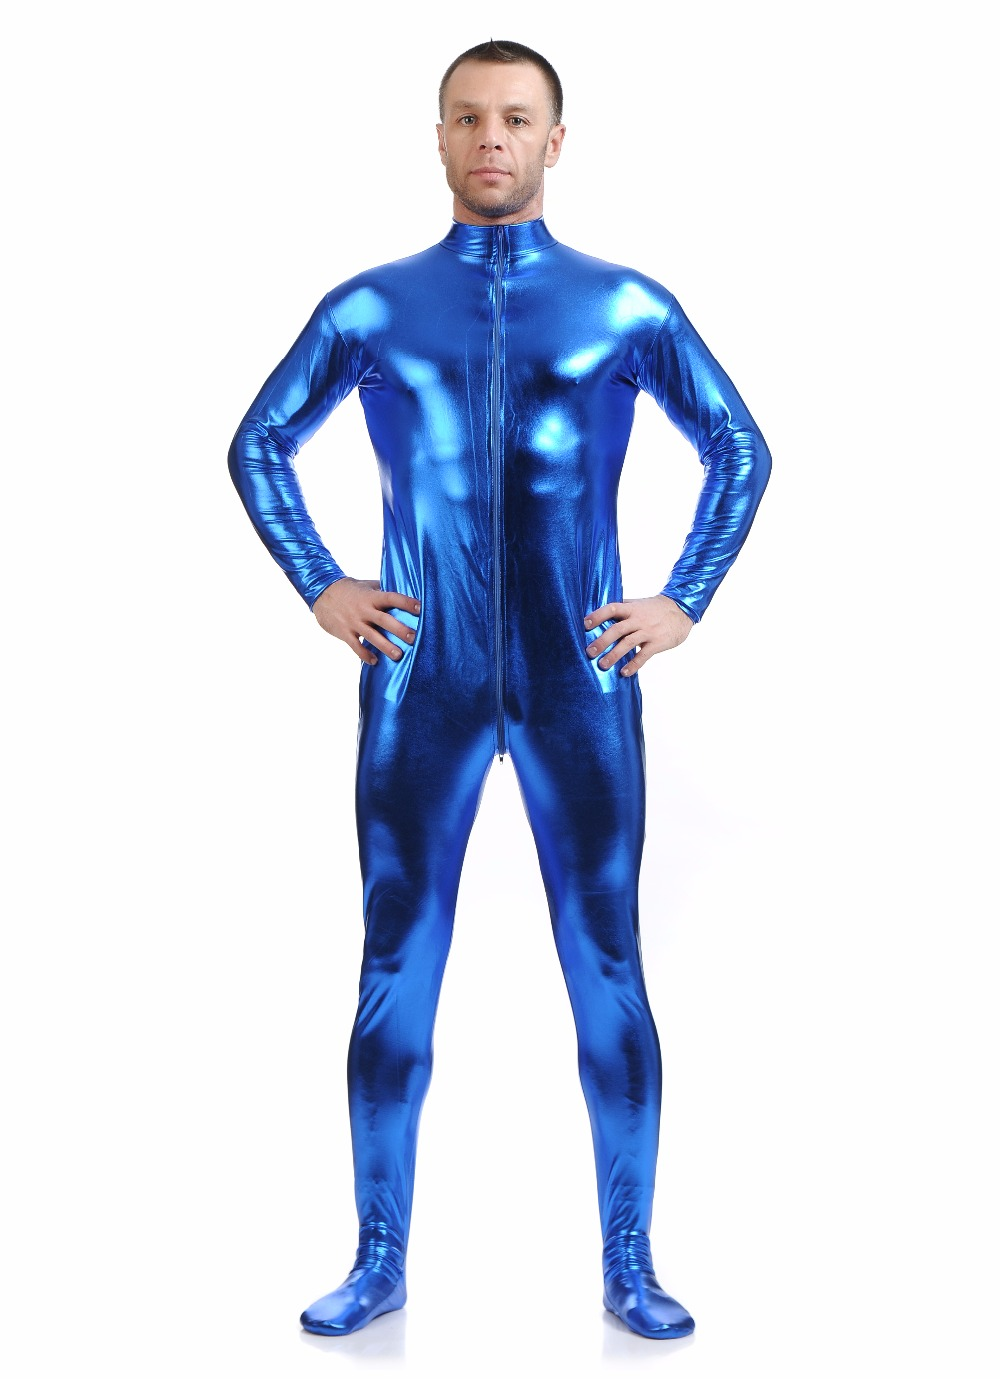 Unisex Blue Zentai Suit Men Front Zip Full Body Zentai Catsuits Spandex Unitard Mock Neck Metallic Lycra Bodysuits No Hood